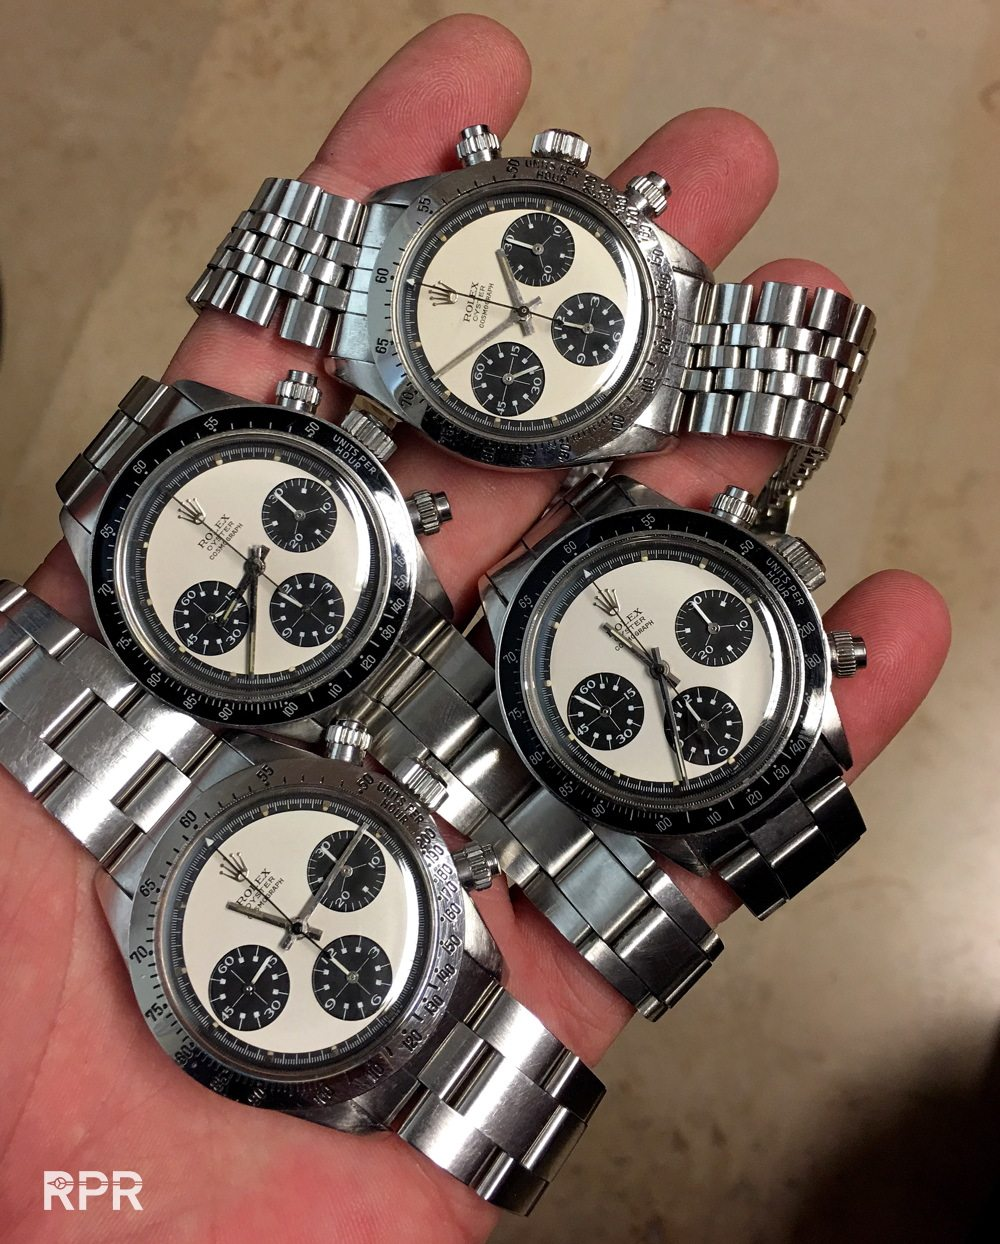 The Ghost Oyster Paul Newman Daytona Rolex Passion Report